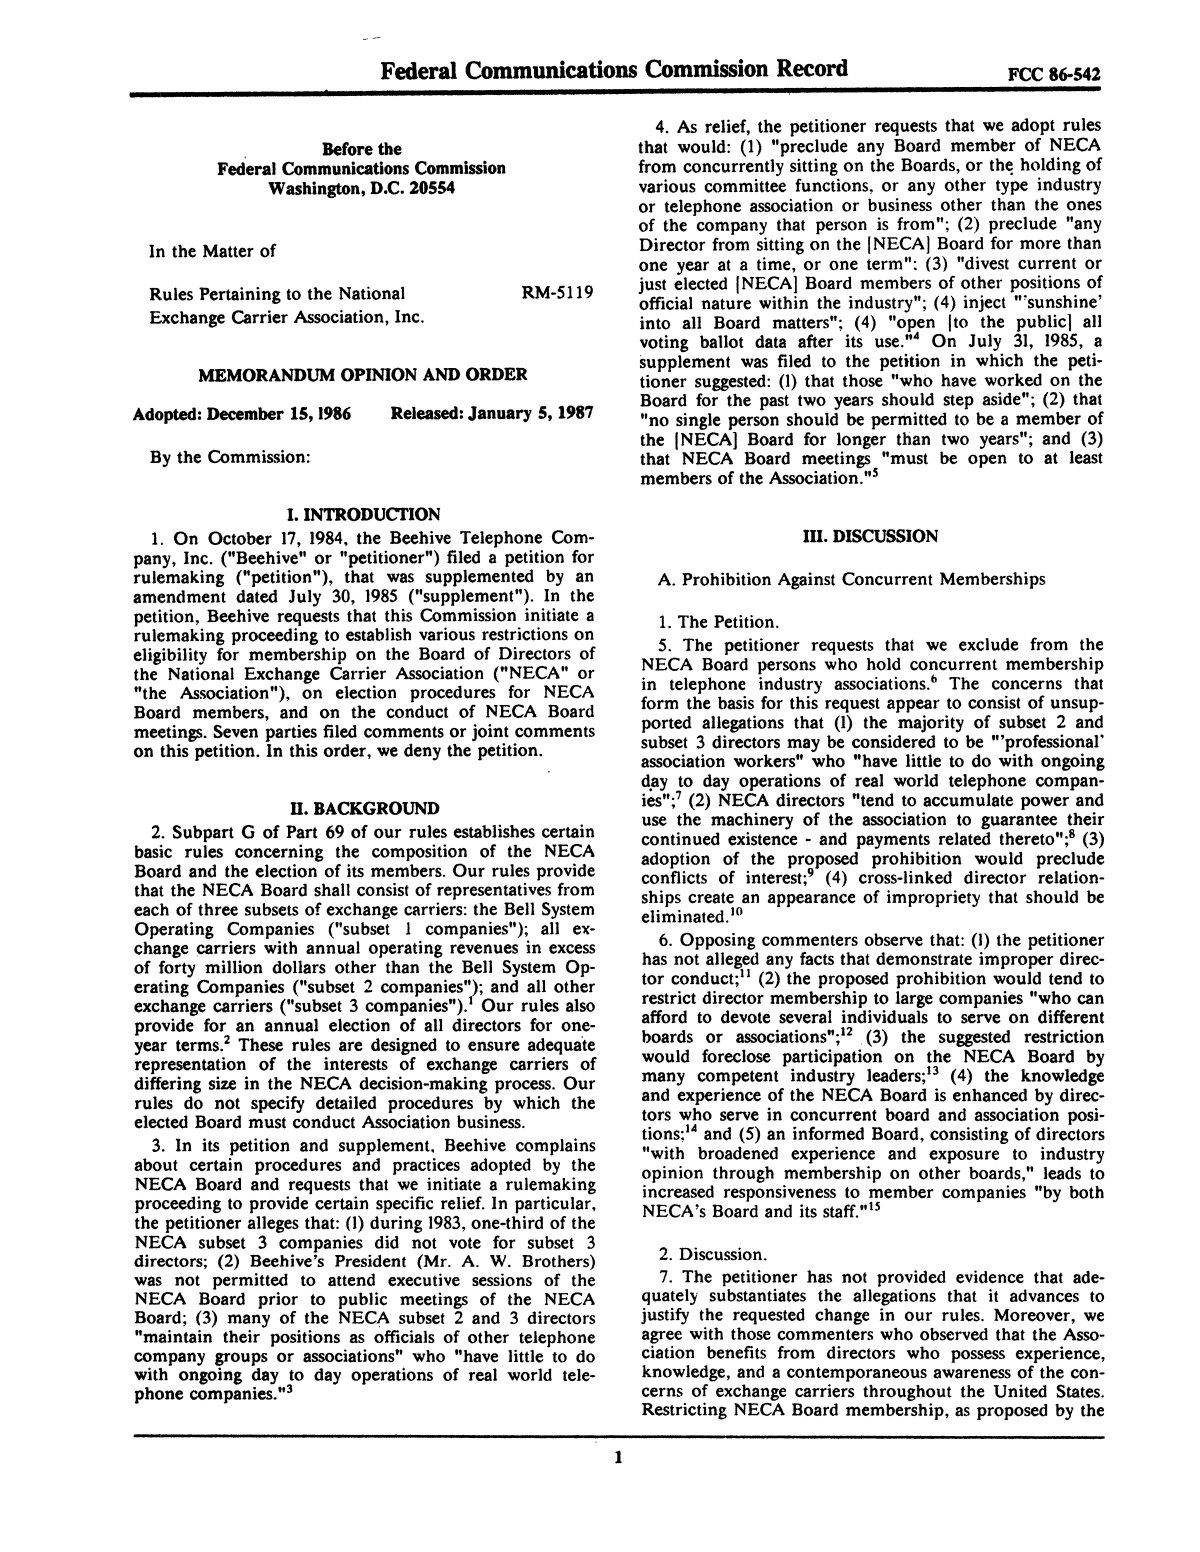 FCC Record, Volume 2, No. 1, Pages 1 to 409, January 5 - January 16, 1987                                                                                                      1